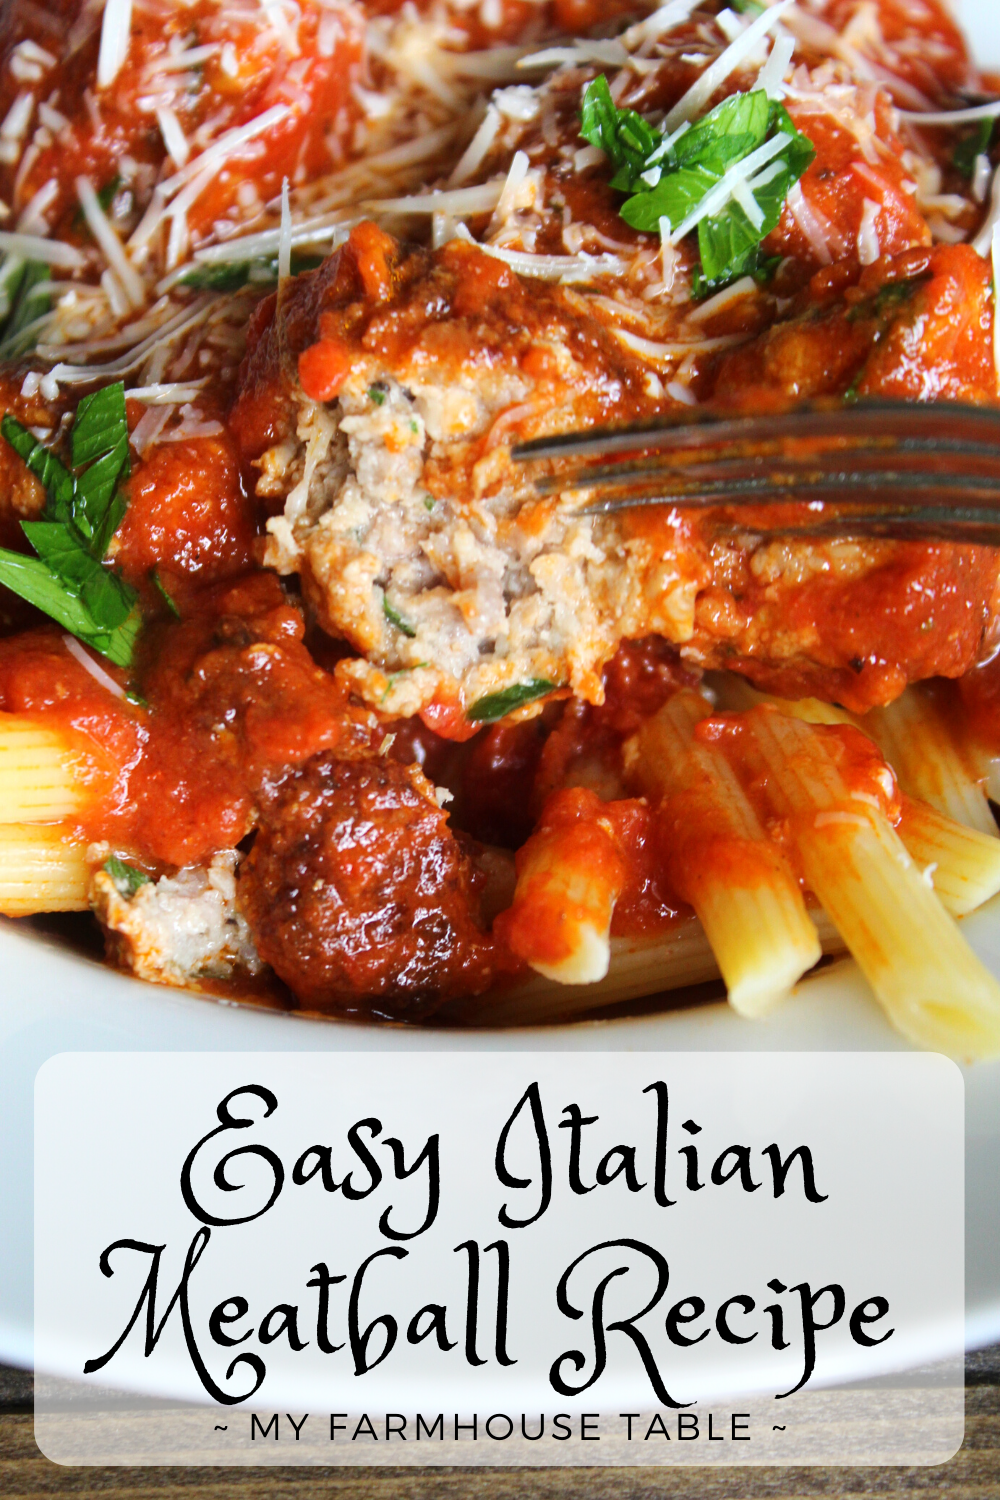 Easy Italian Meatball Recipe Authentic Ground Beef and Pork Meatballs made in Marinara Sauce The Best Homemade Meatball Recipe Traditional and Simple My Farmhouse Table